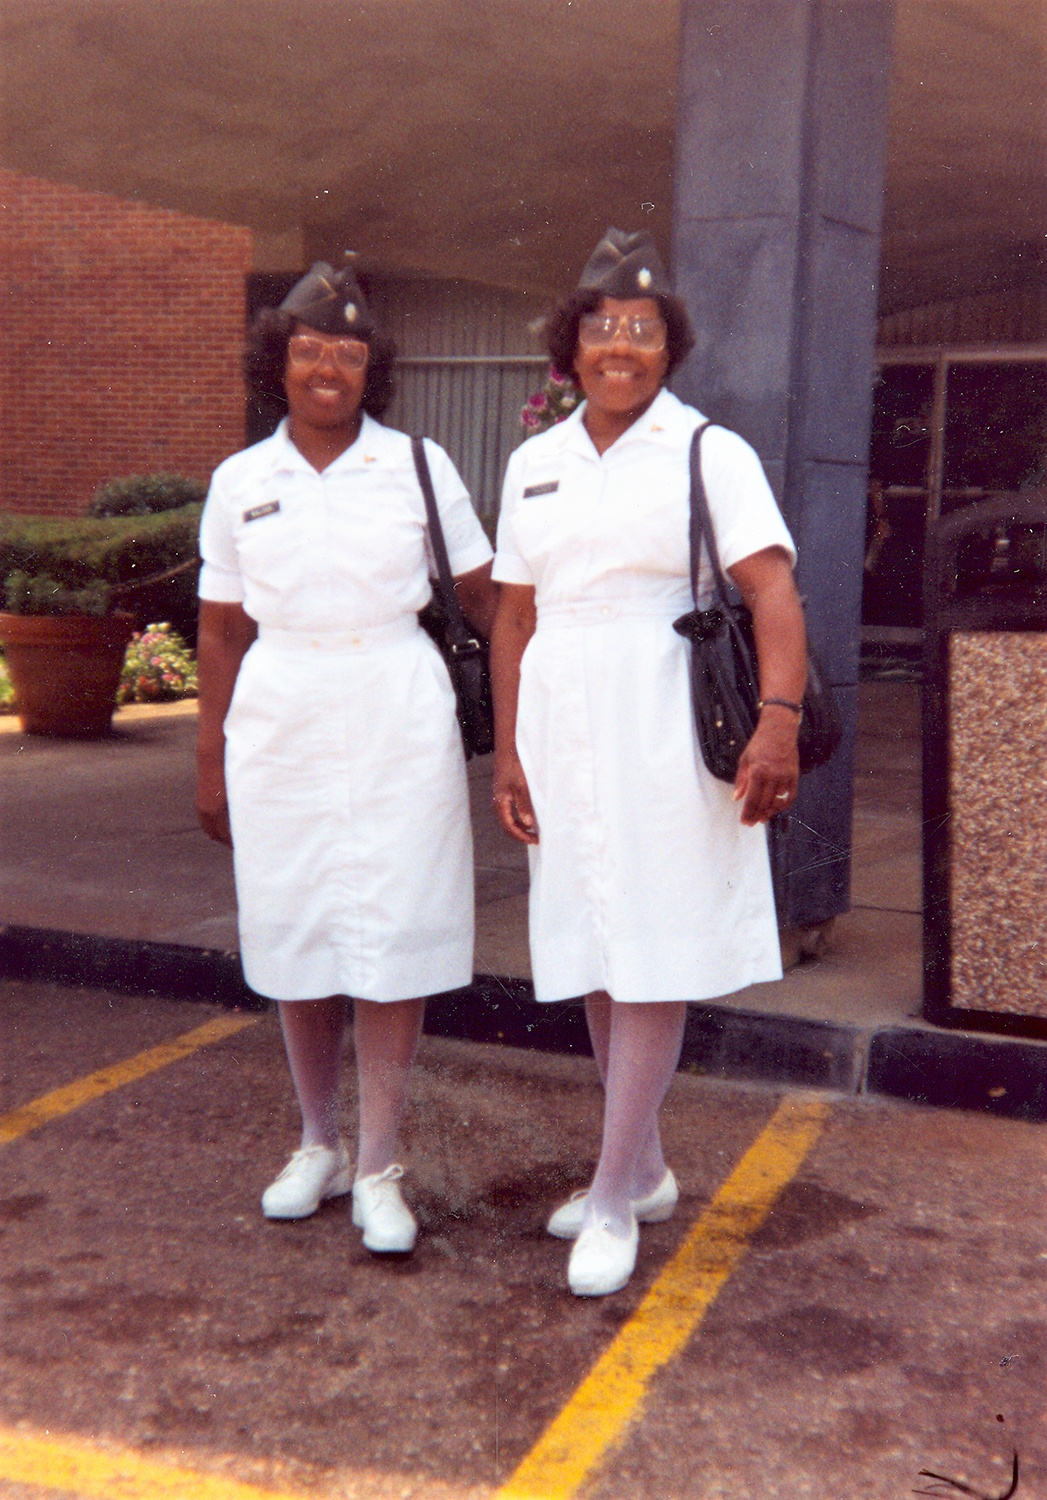 Patricia Tucker and a Colleague at St. Francis Hospital, c. 1991. Courtesy of Patricia Tucker.